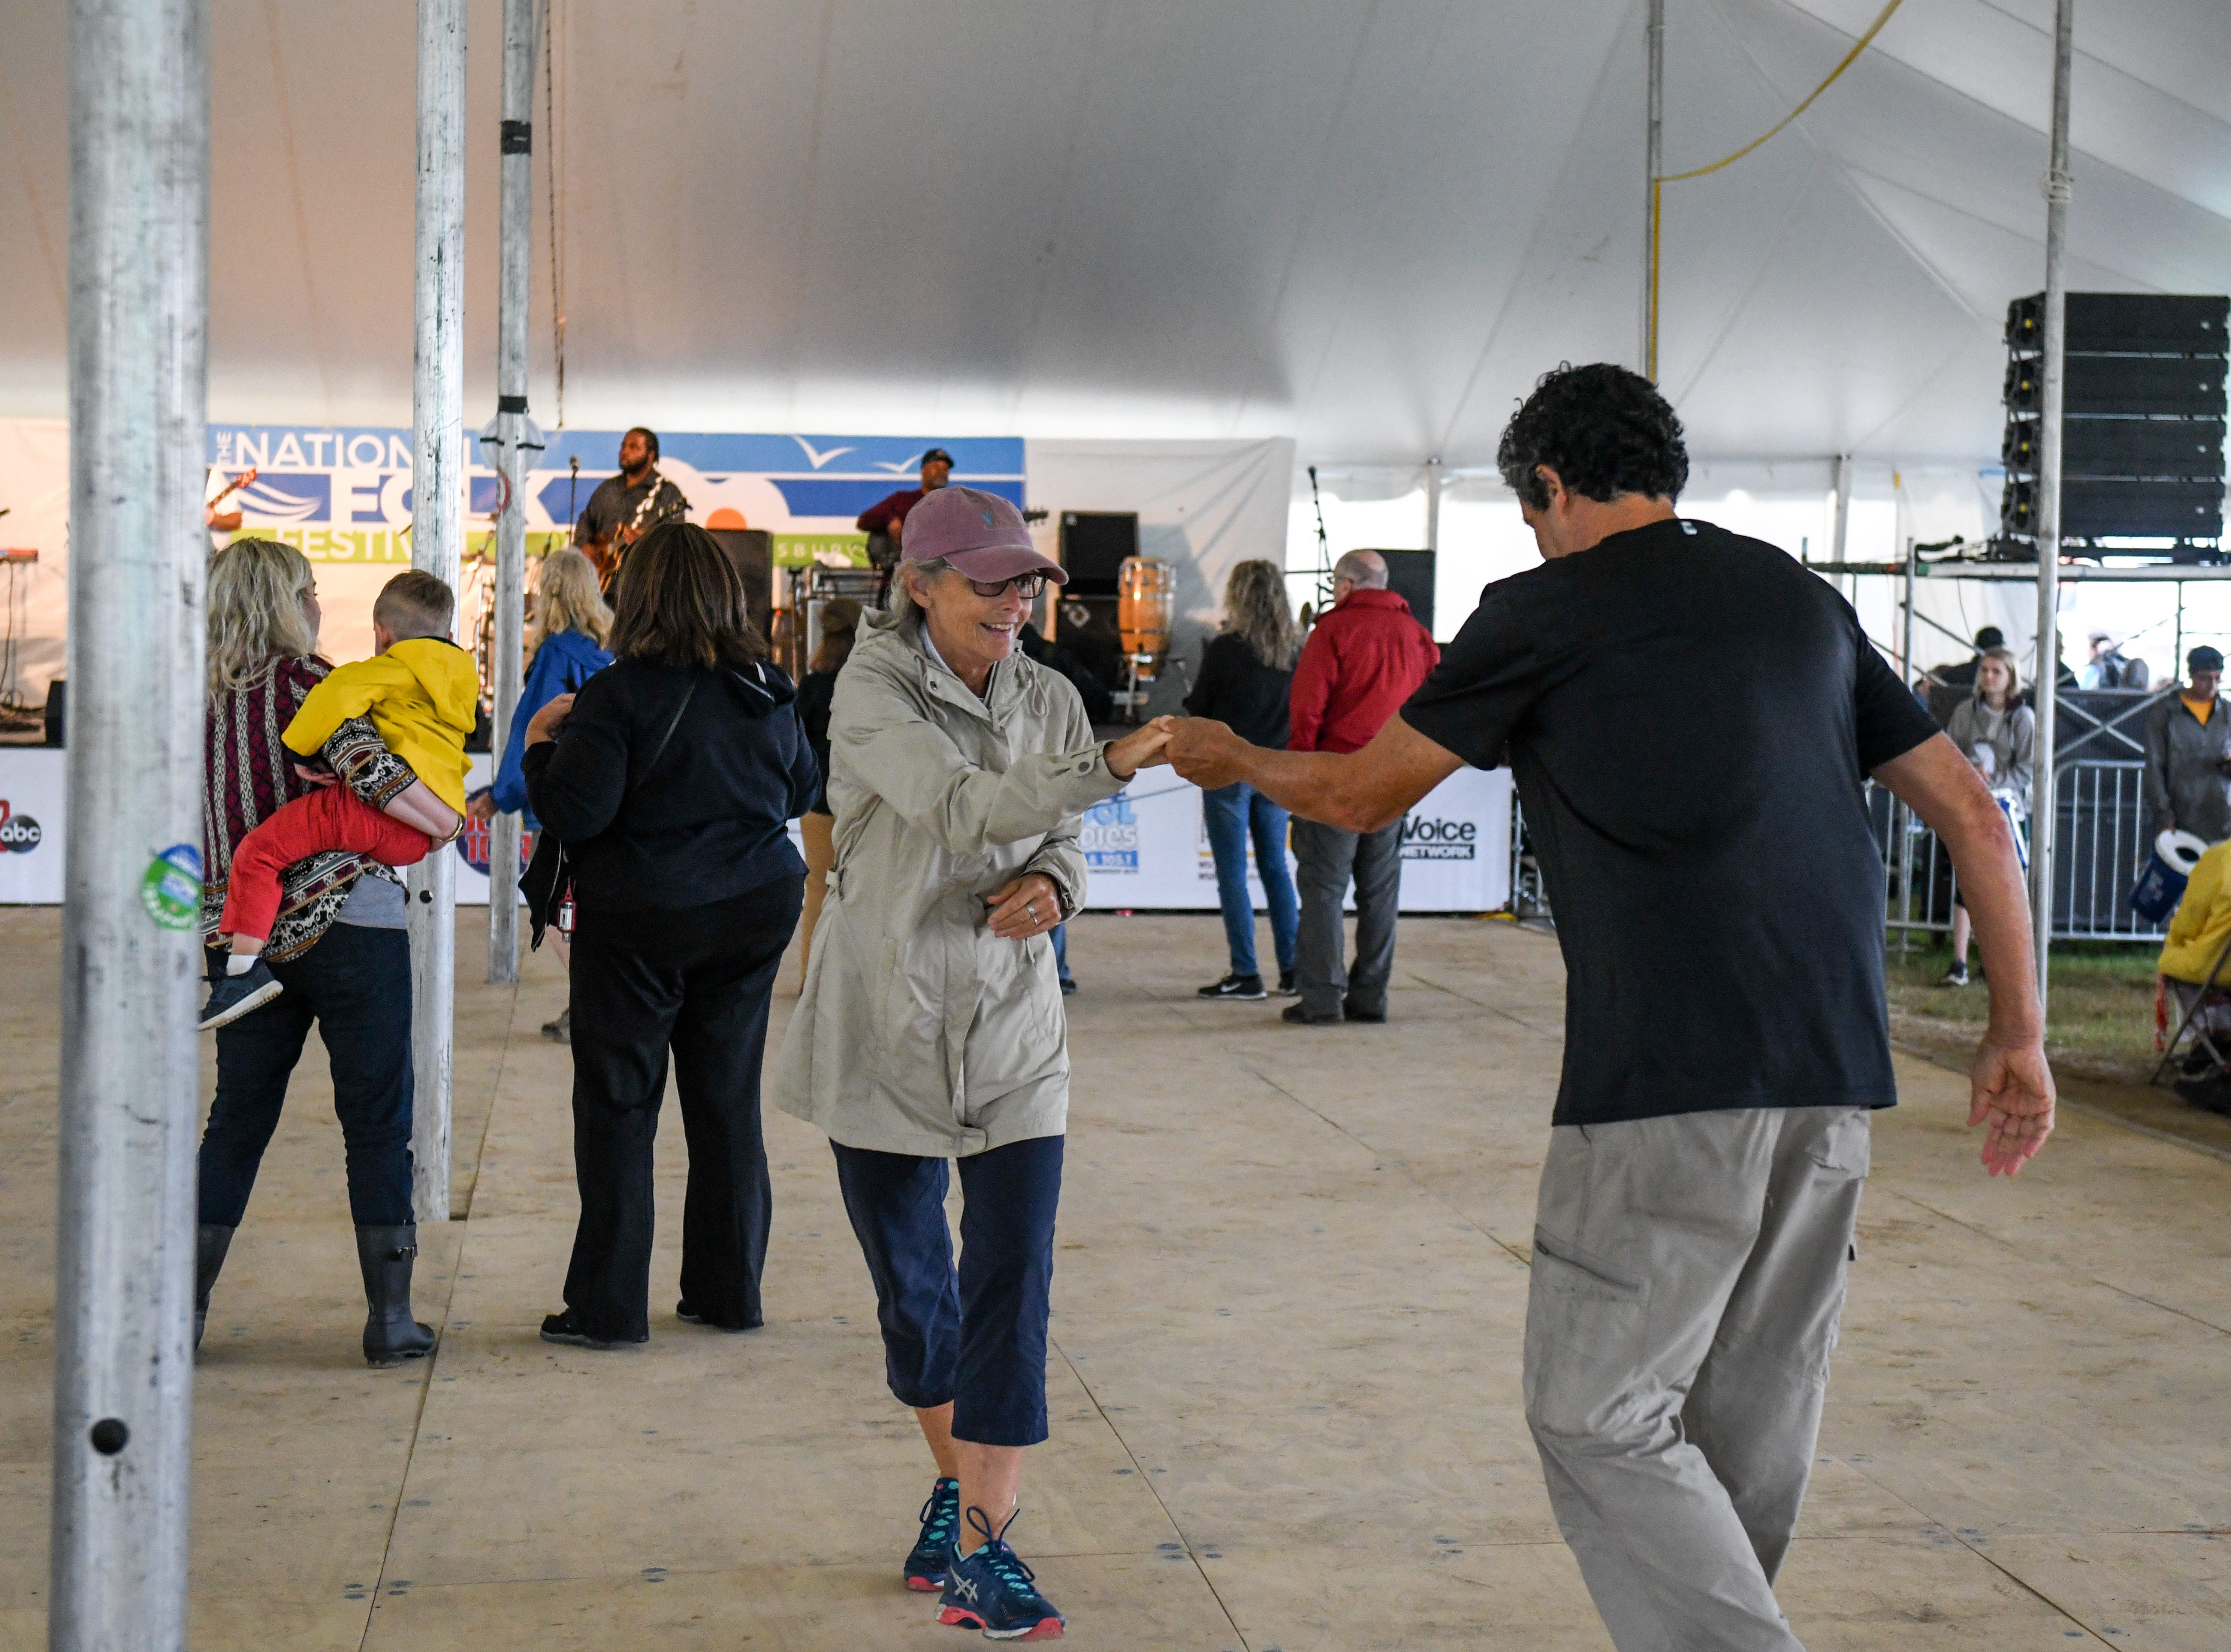 Festival attendees dance to Marquise Knox at the National Folk Fest in Salisbury on Sunday, Sept. 9.